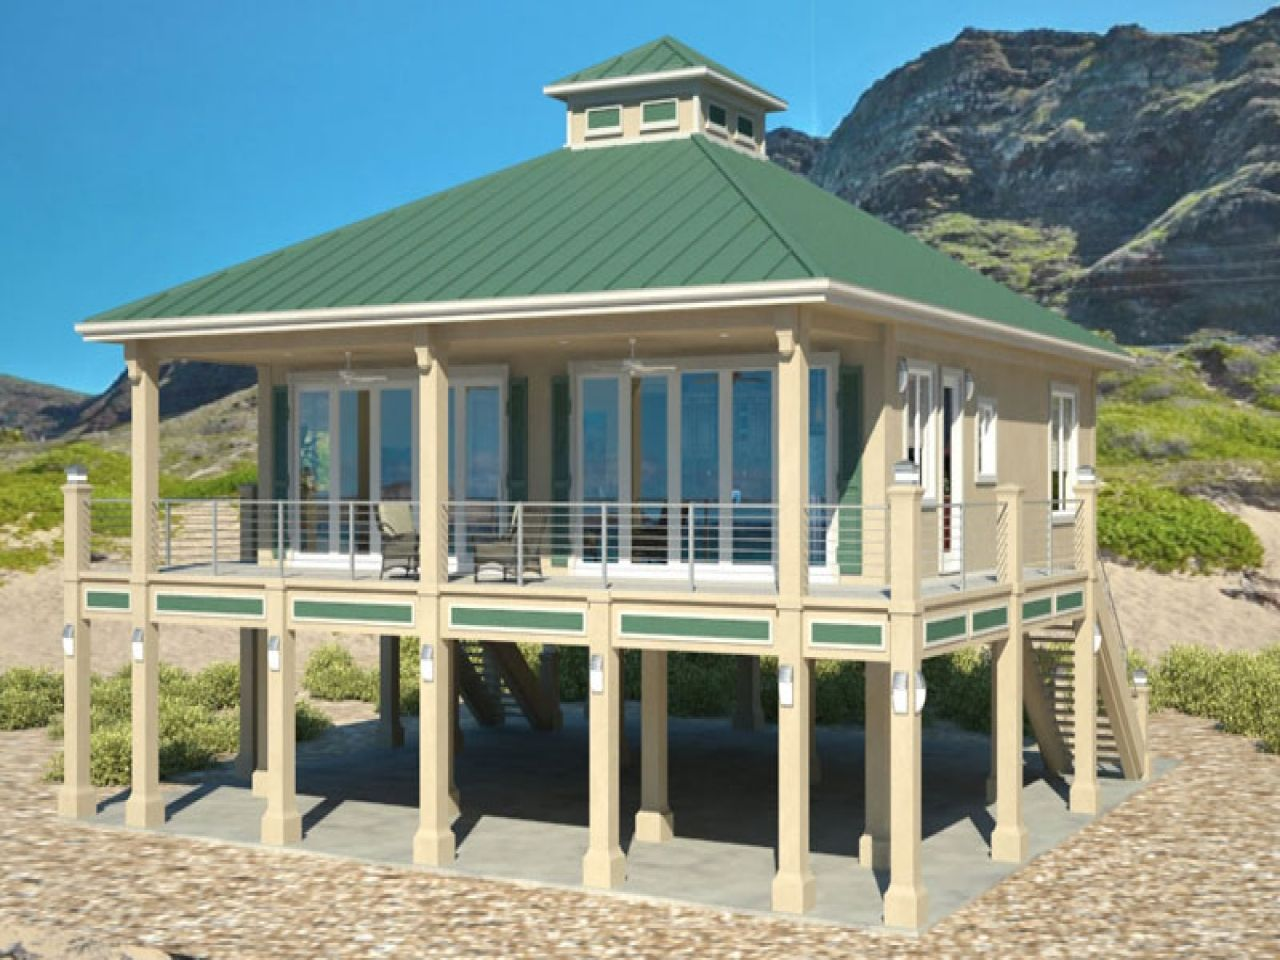 Amazing Beach House Plan Inspirations For Your Living Style Small Beach House Plans Small Beach Houses Beach House Plans